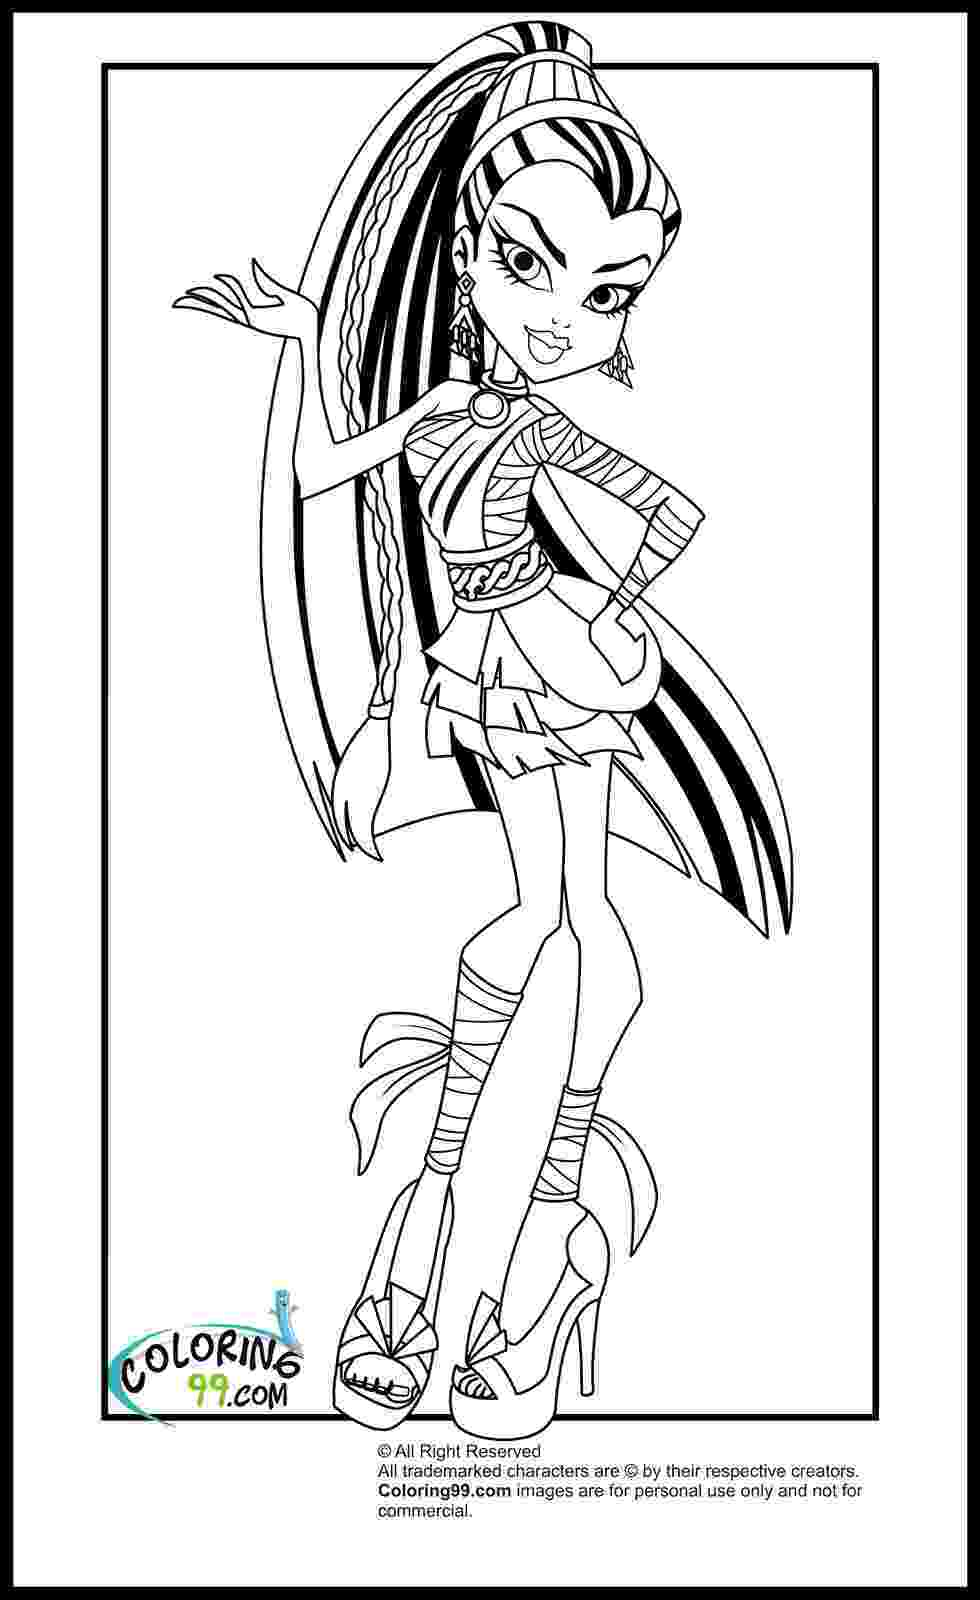 coloring page monster high 17 best images about monster high on pinterest custom monster coloring high page